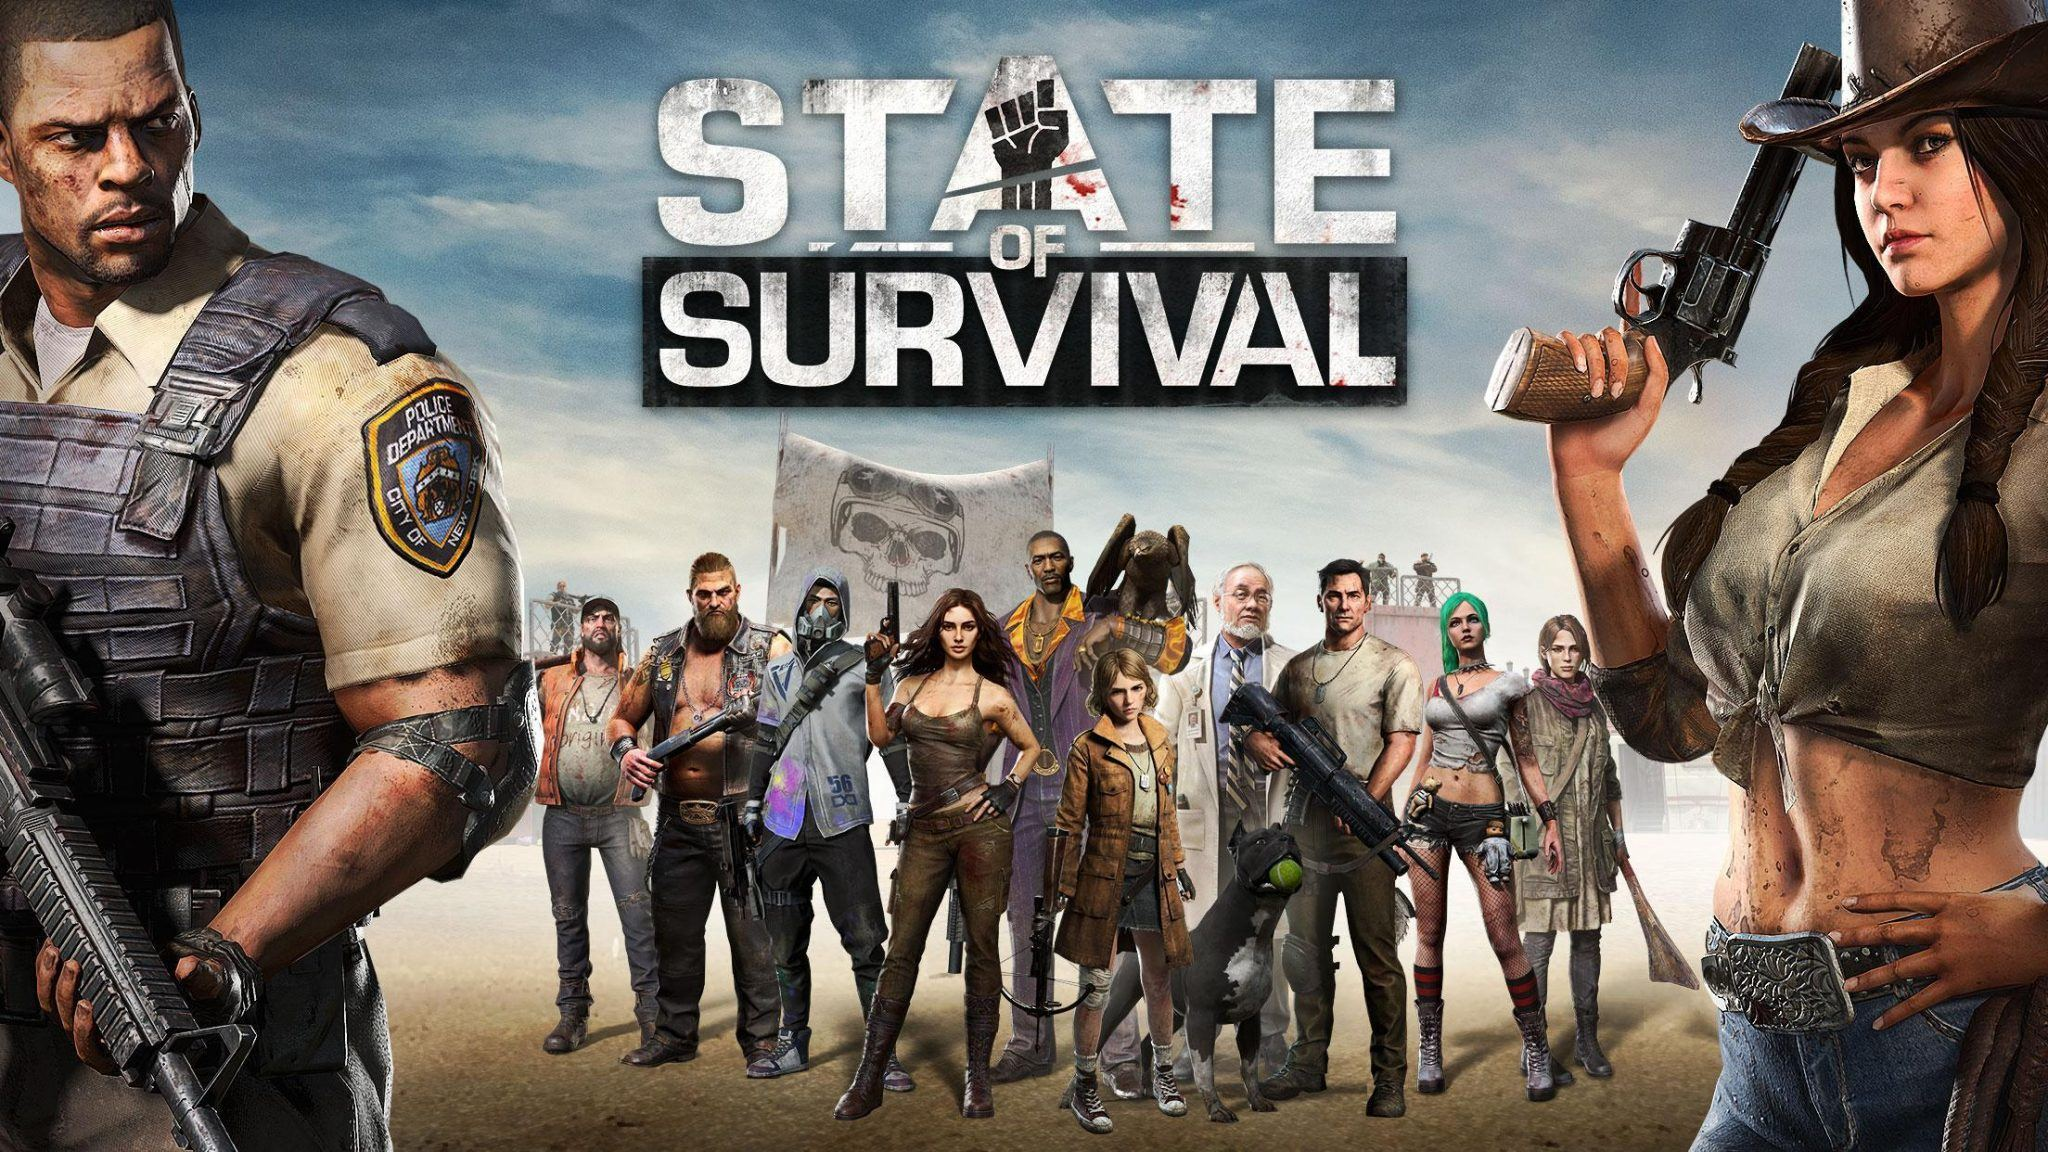 state of survival hile - State of Survival Apk indir - Beceri Hileli Mod v1.7.53